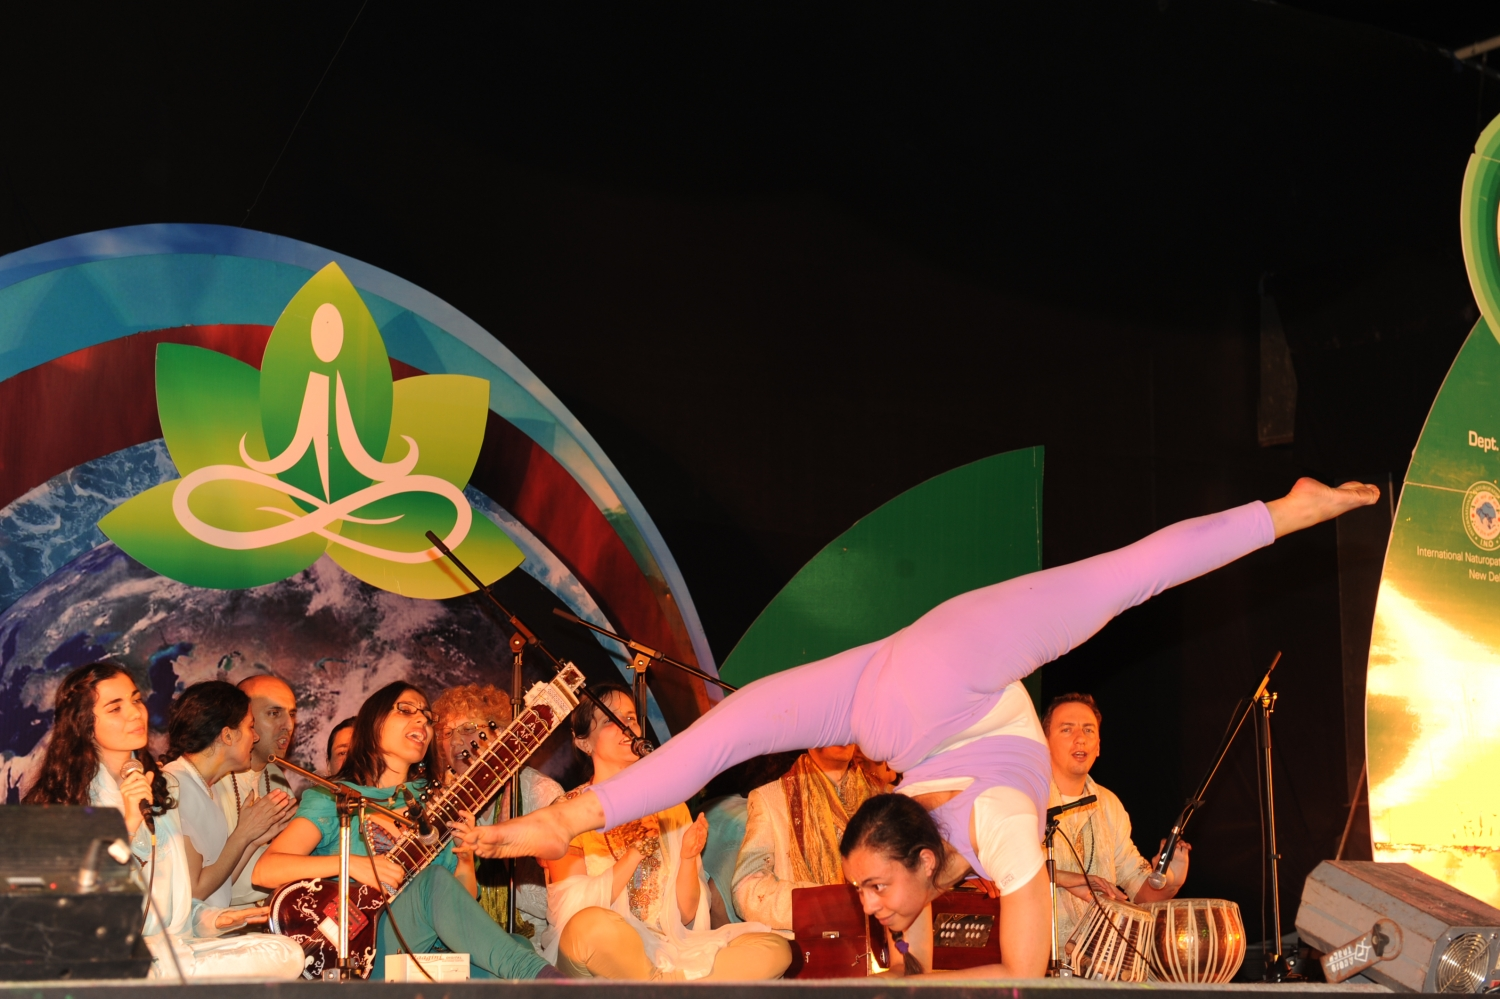 Apresentação do Omkára e do Pashupati - International Conference on Yoga and Naturopathy - Bengaluru, Índia - 2012, Fevereiro